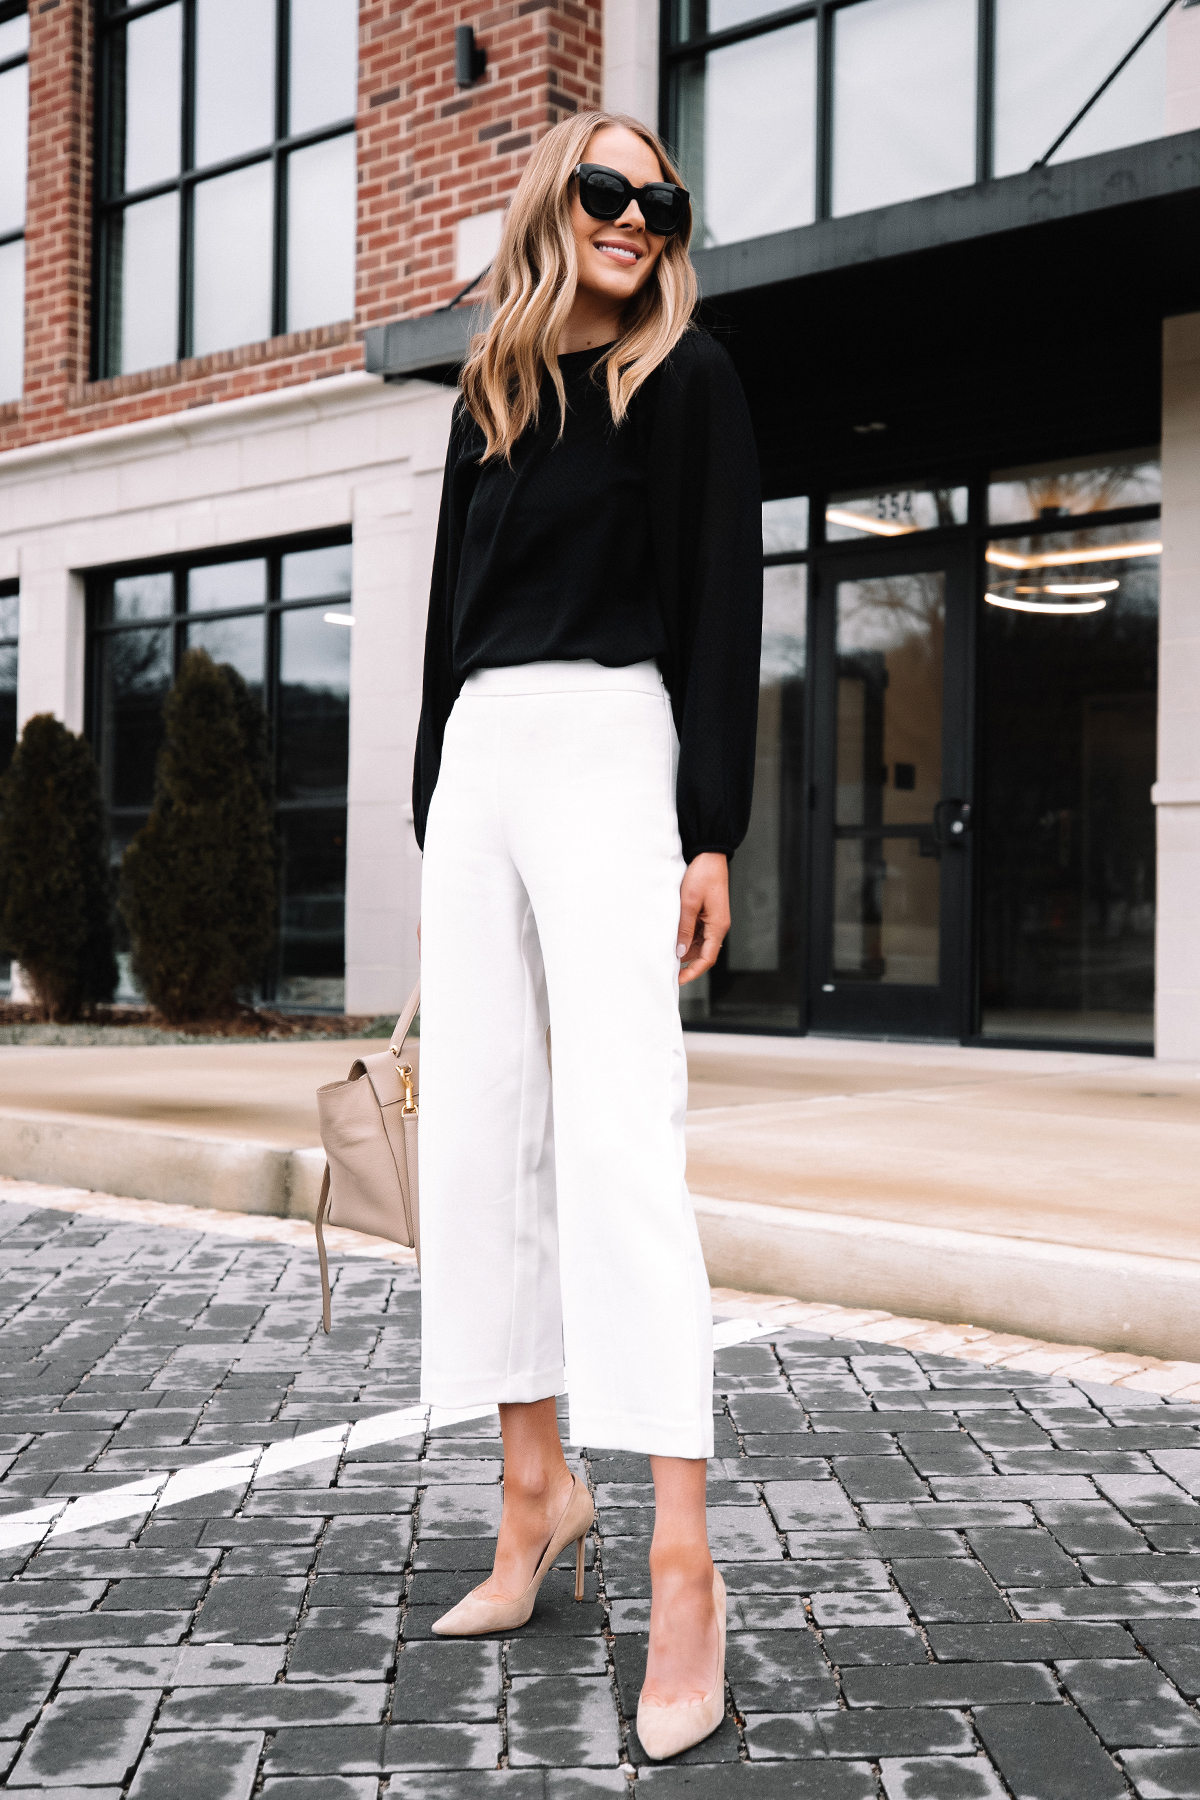 Fashion Jackson Wearing Black Blouse White Pants Beige Pumps Workwear Outfit 5